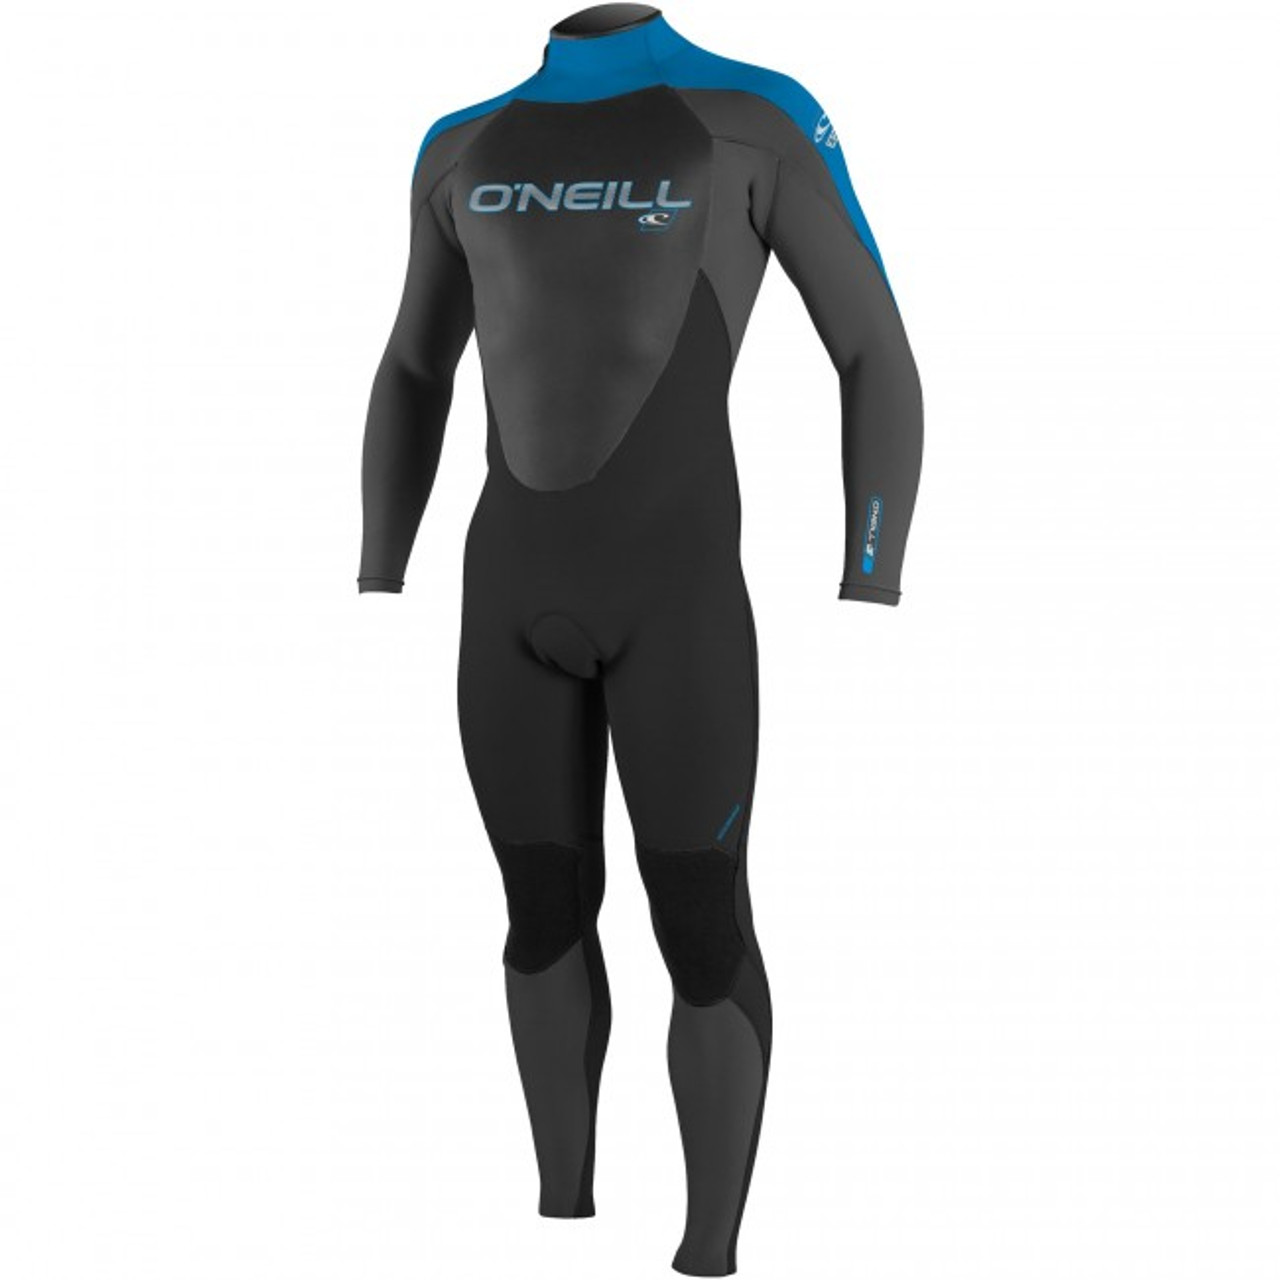 O'NEILL Youth Epic 4/3mm Ful Wetsuit